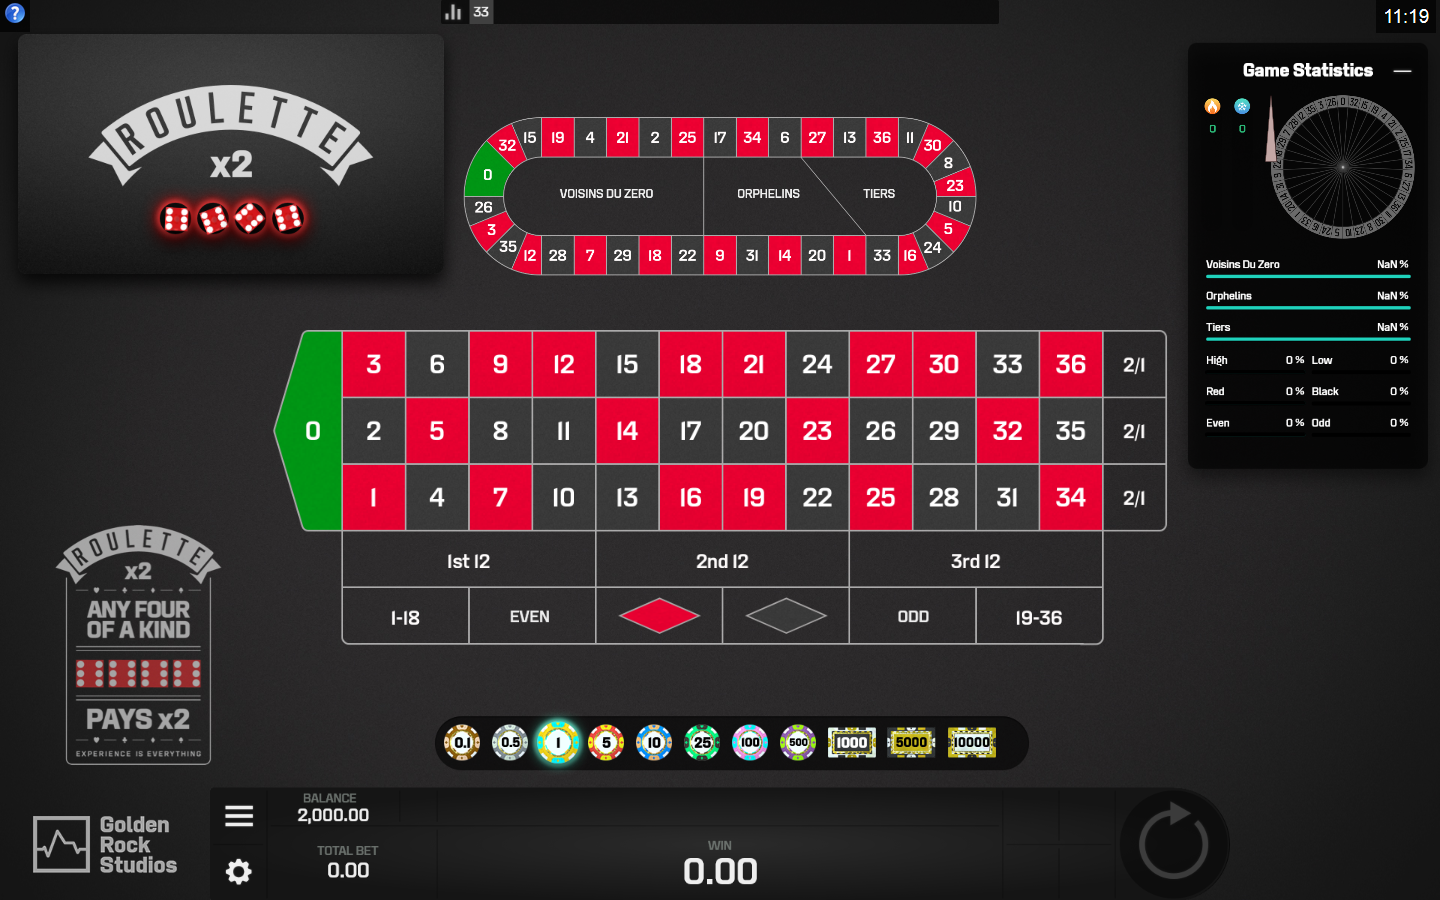 Golden Rock Studios Roulette Software Roulette X2 with Special Bets